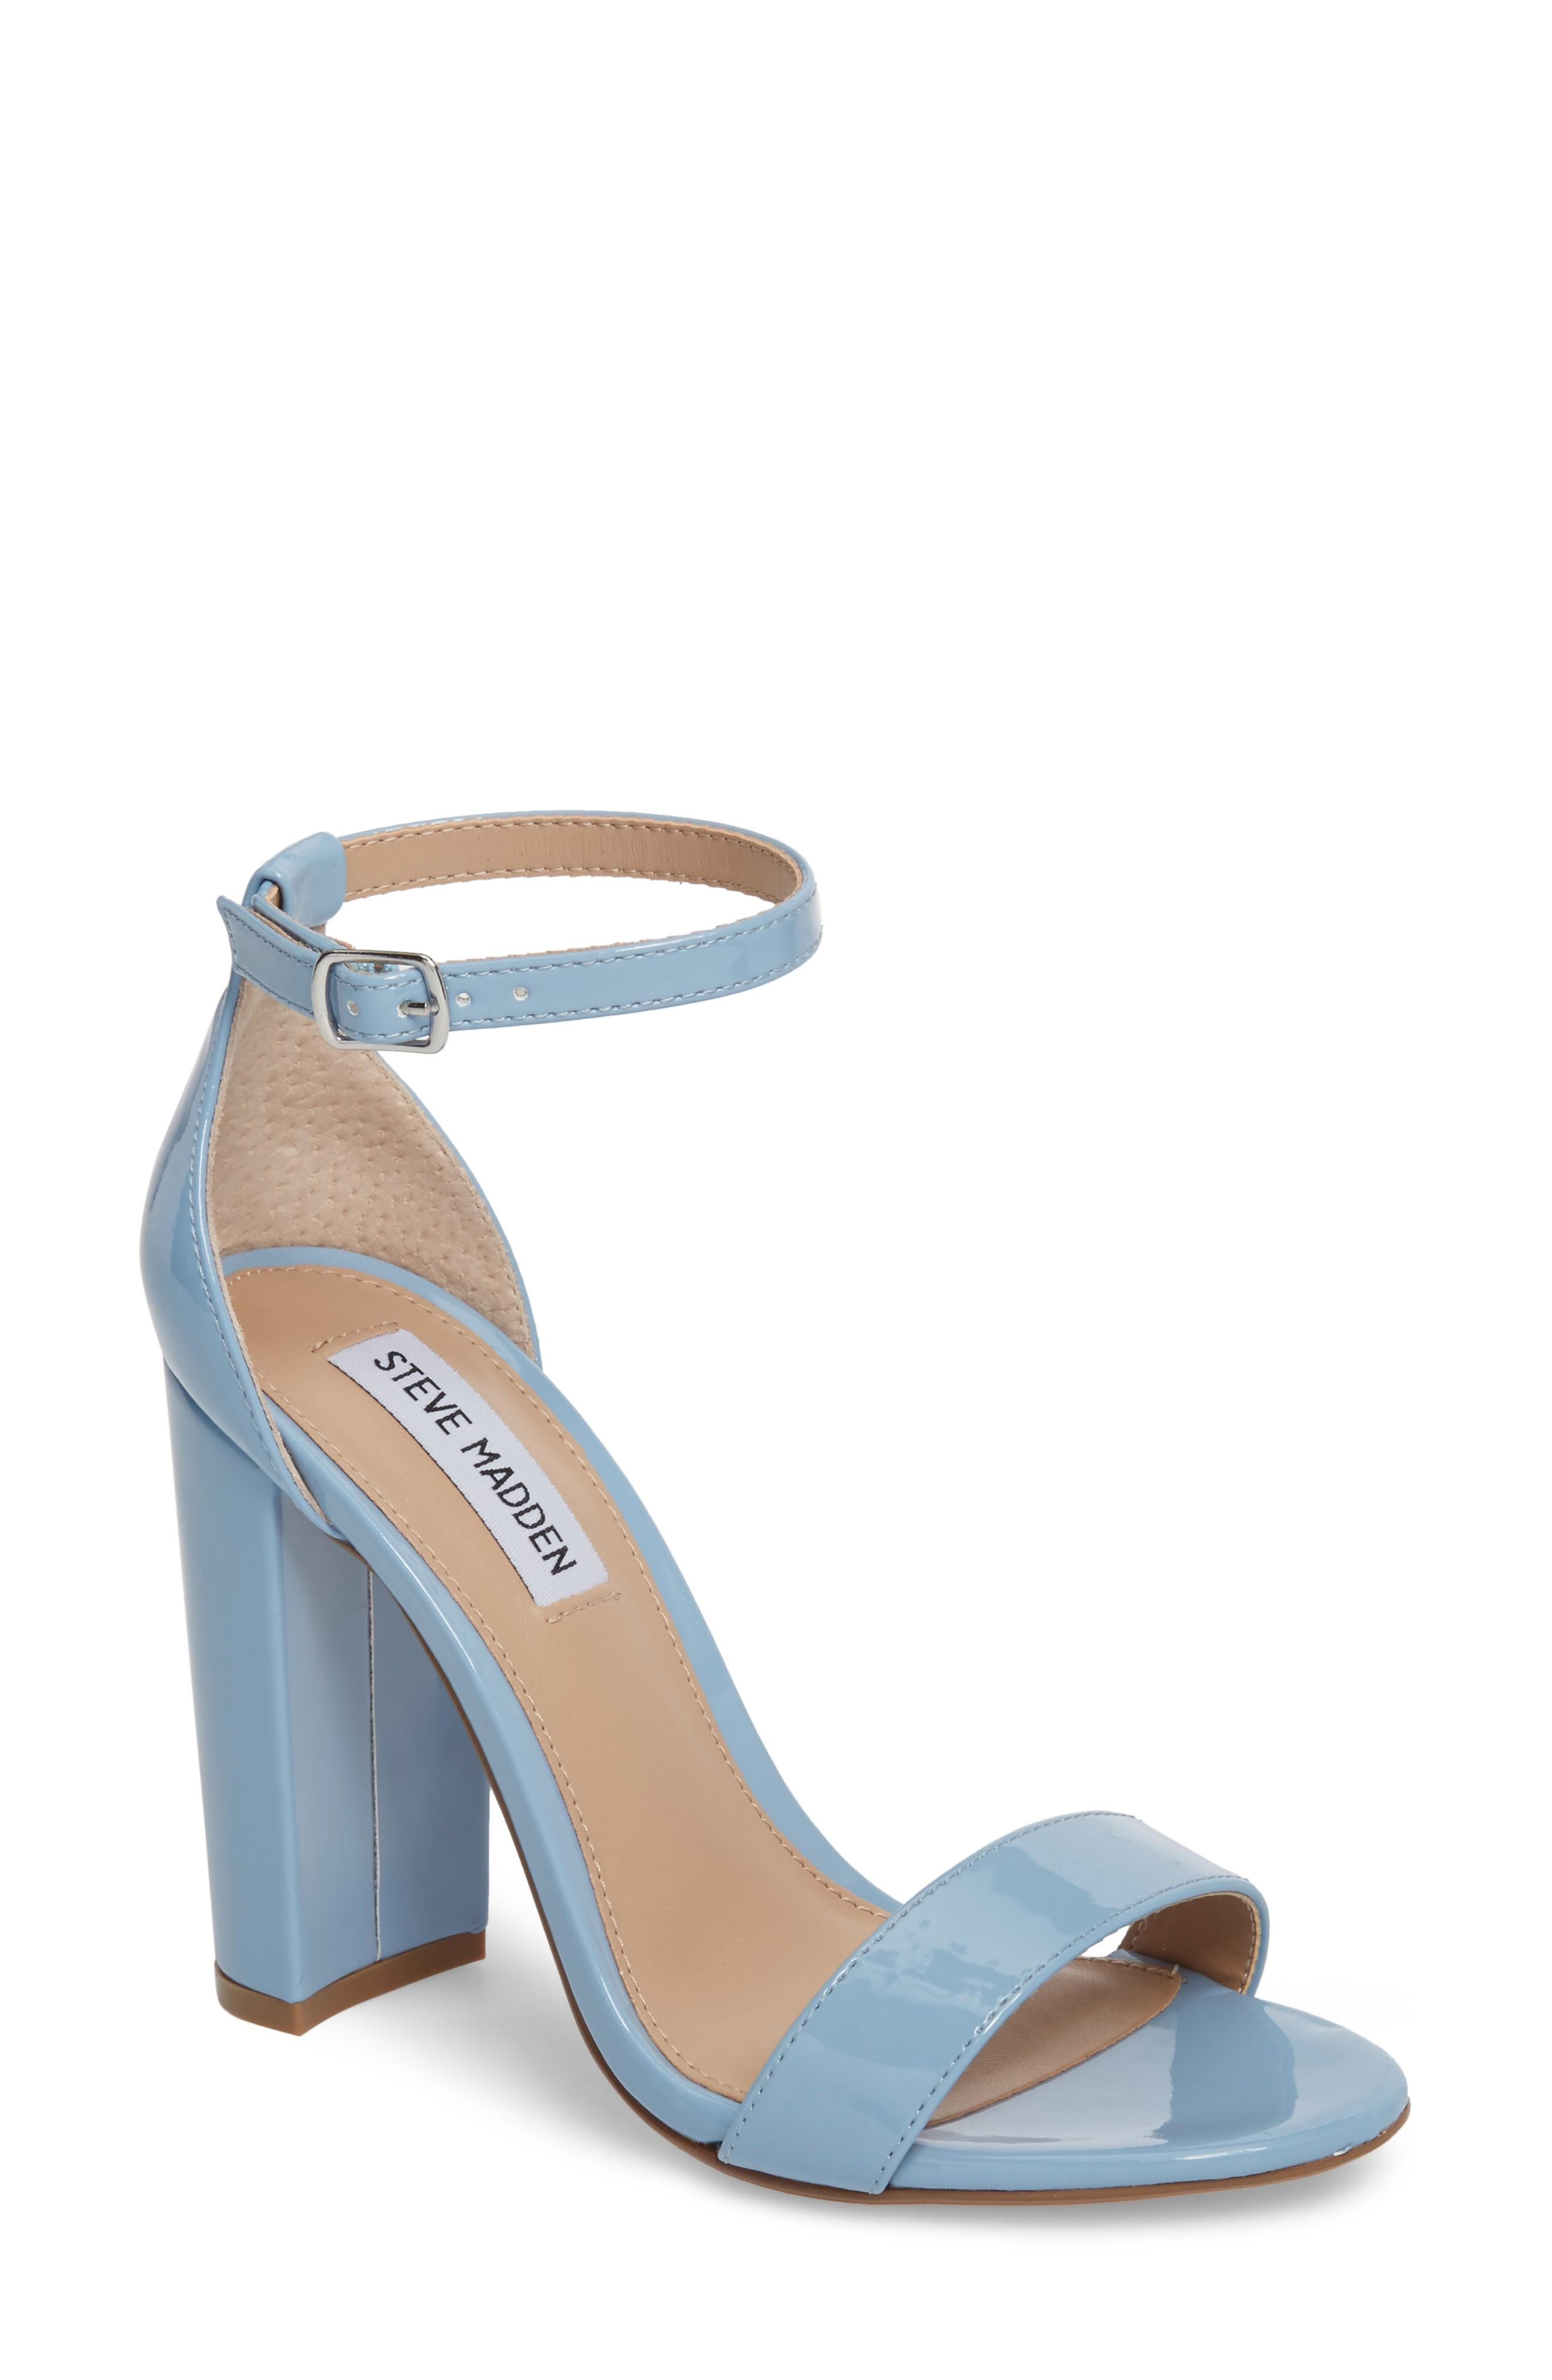 d3dcfff1277 A minimalist ankle-strap sandal is set on a chunky heel. Style Name  Steve  Madden Carrson Sandal (Women). Style Number  5047376 4. Available in stores.